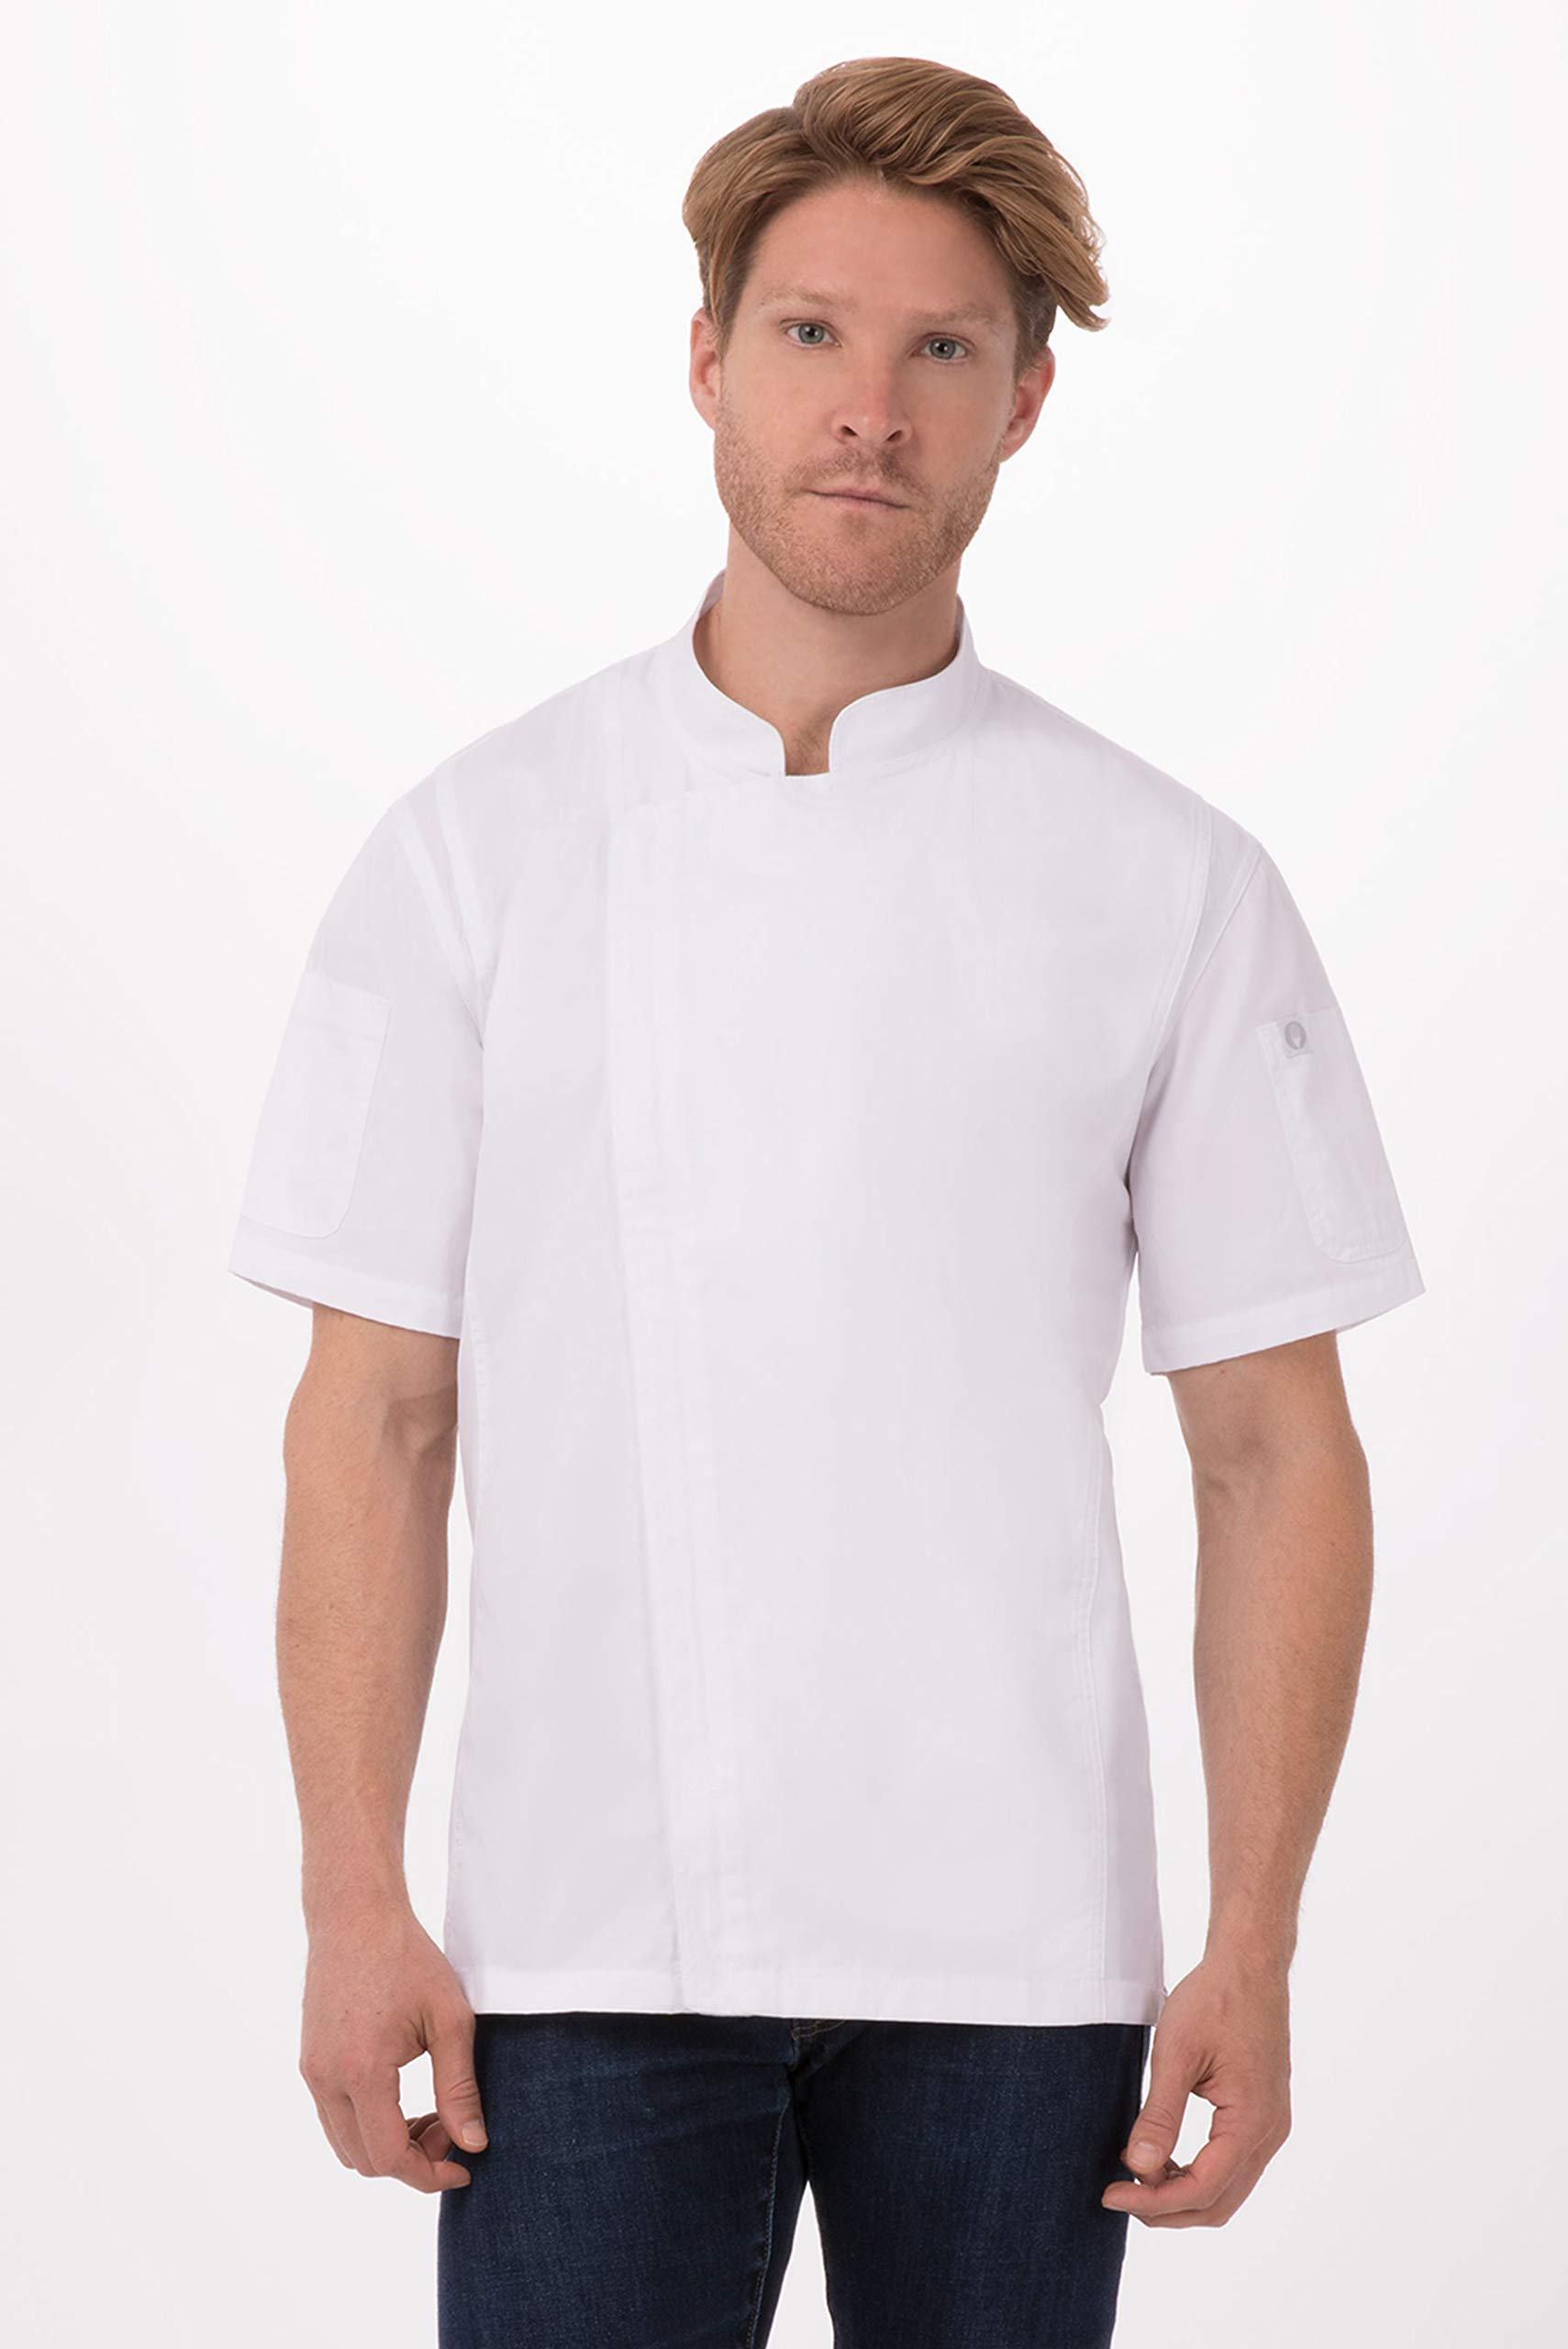 Chef Works Men's Rochester Chef Coat, White, X-Large by Chef Works